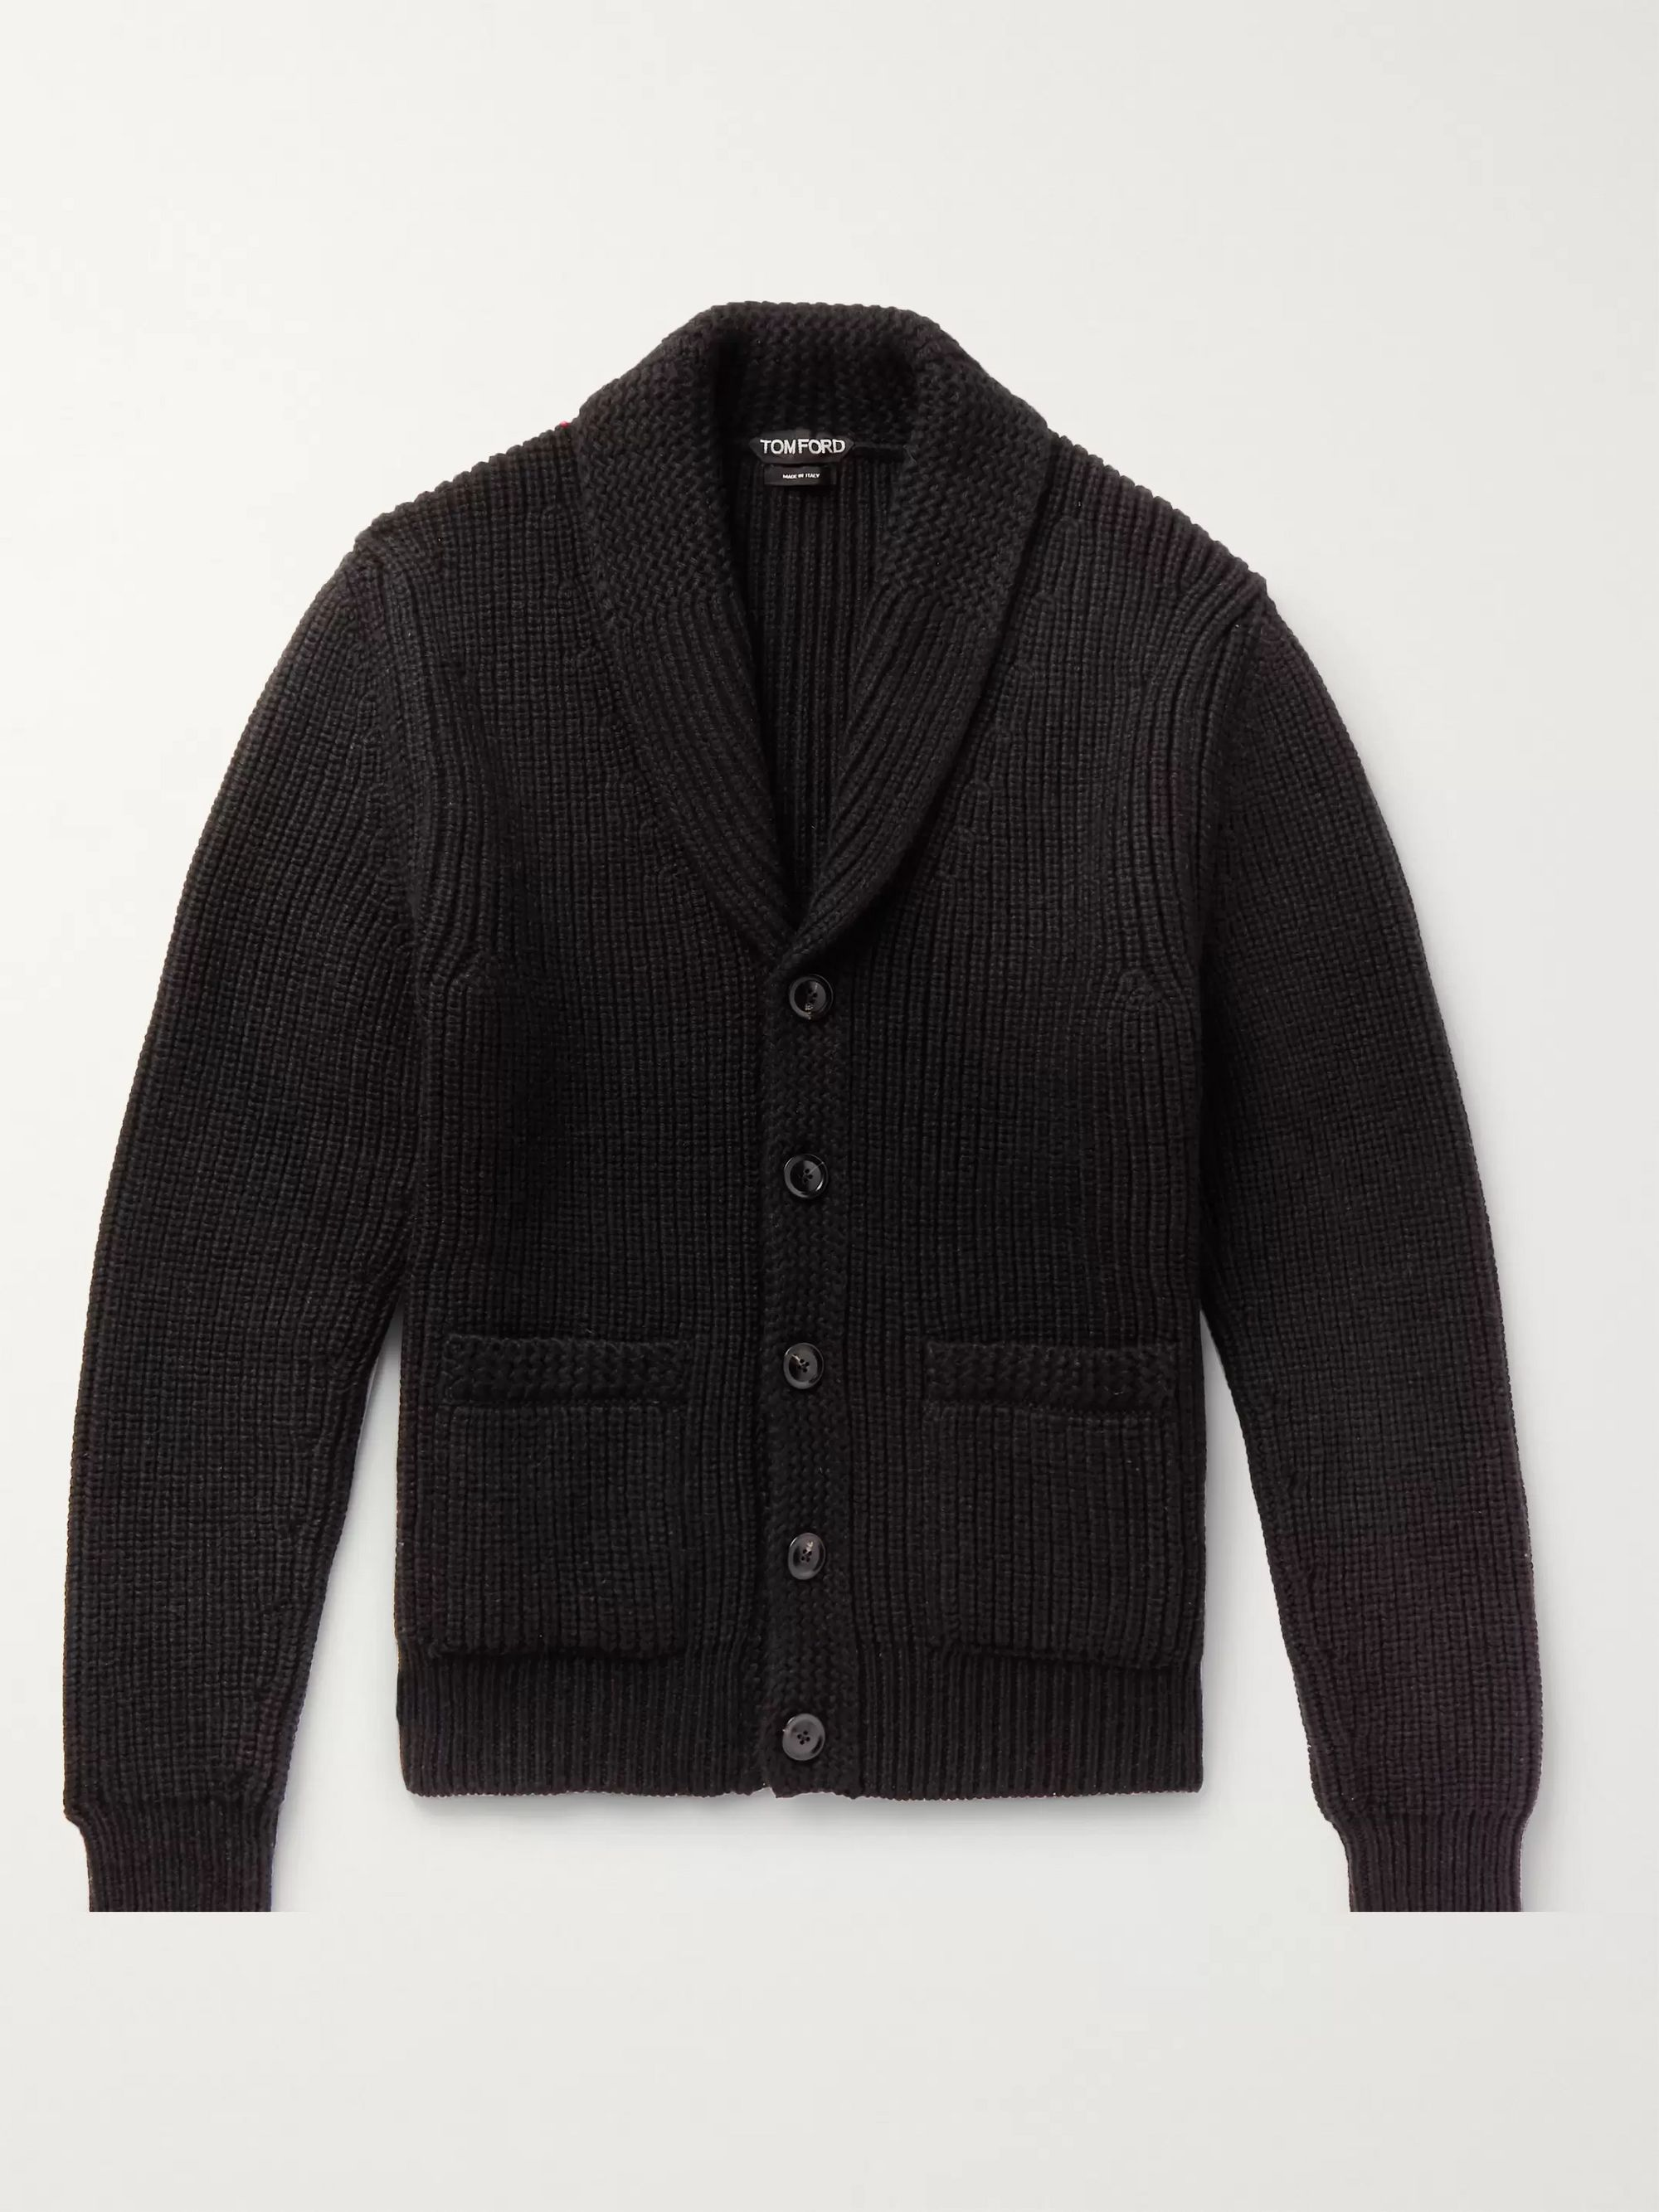 TOM FORD Shawl-Collar Cable-Knit Cashmere and Mohair-Blend Cardigan